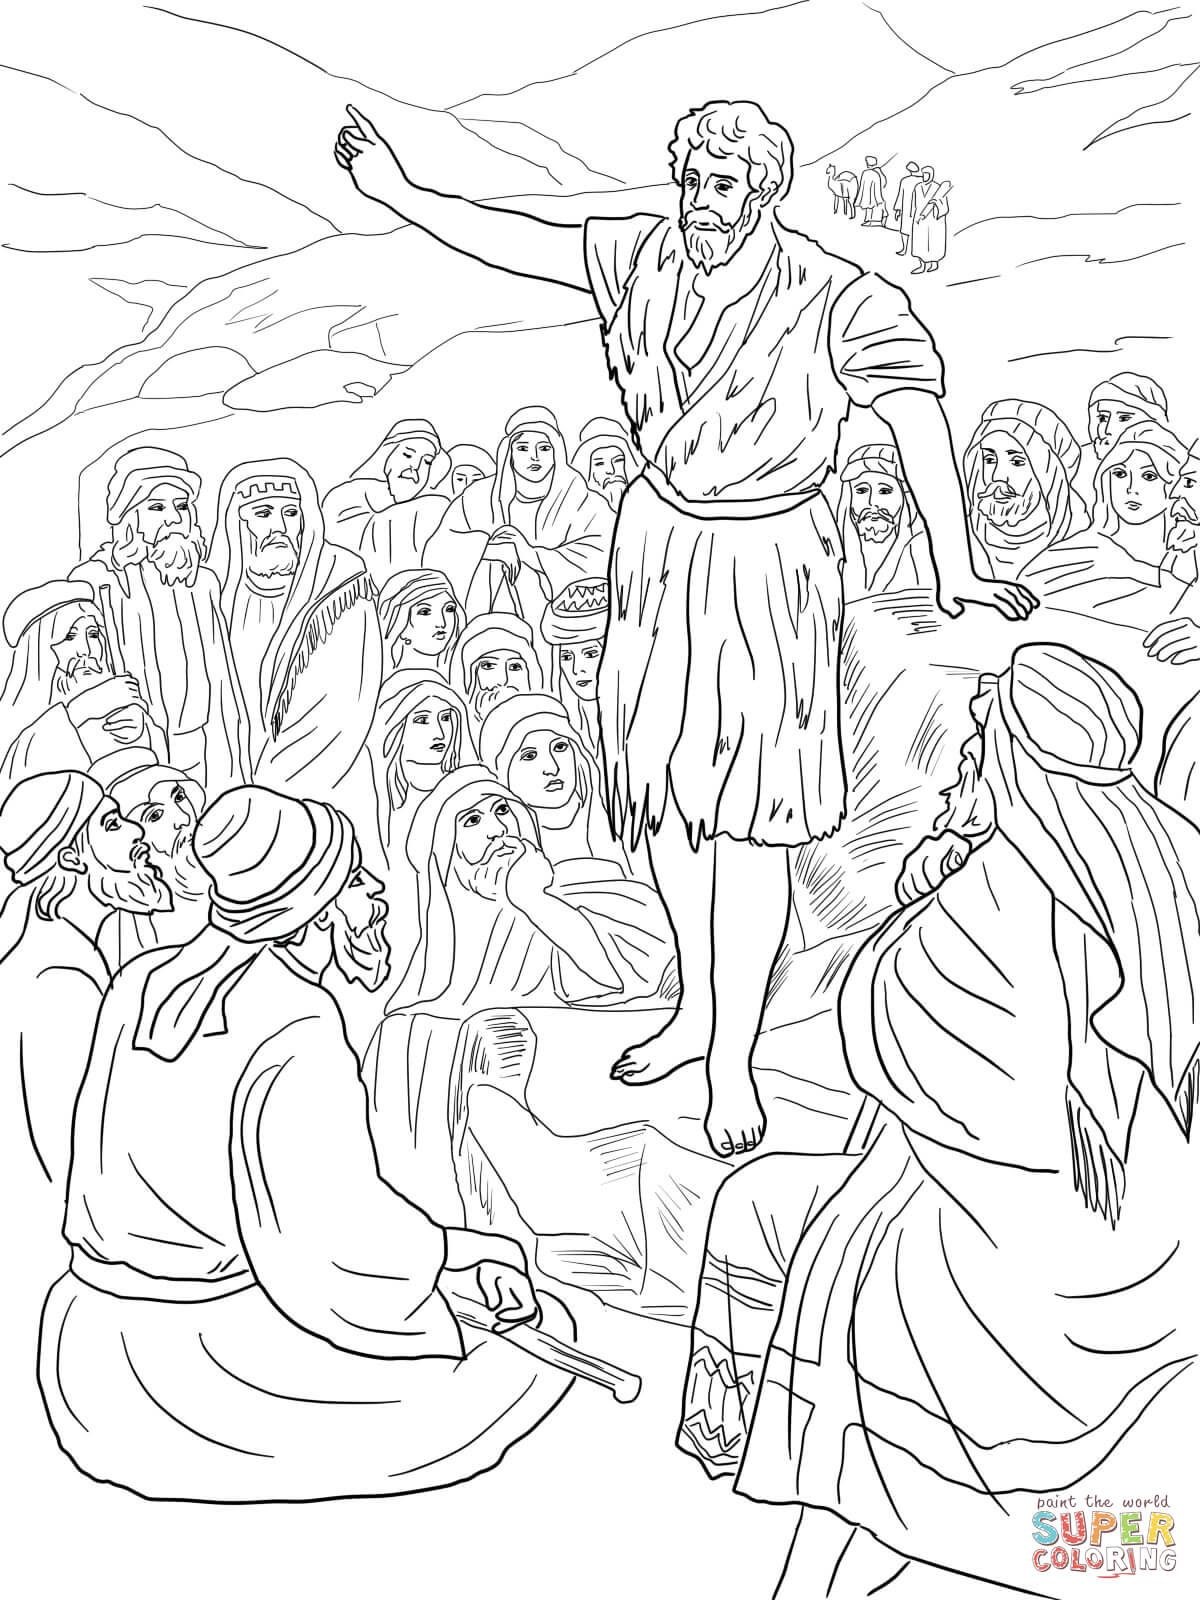 Coloring Page For Zechariah | Coloring Pages | Pinterest | Oppas